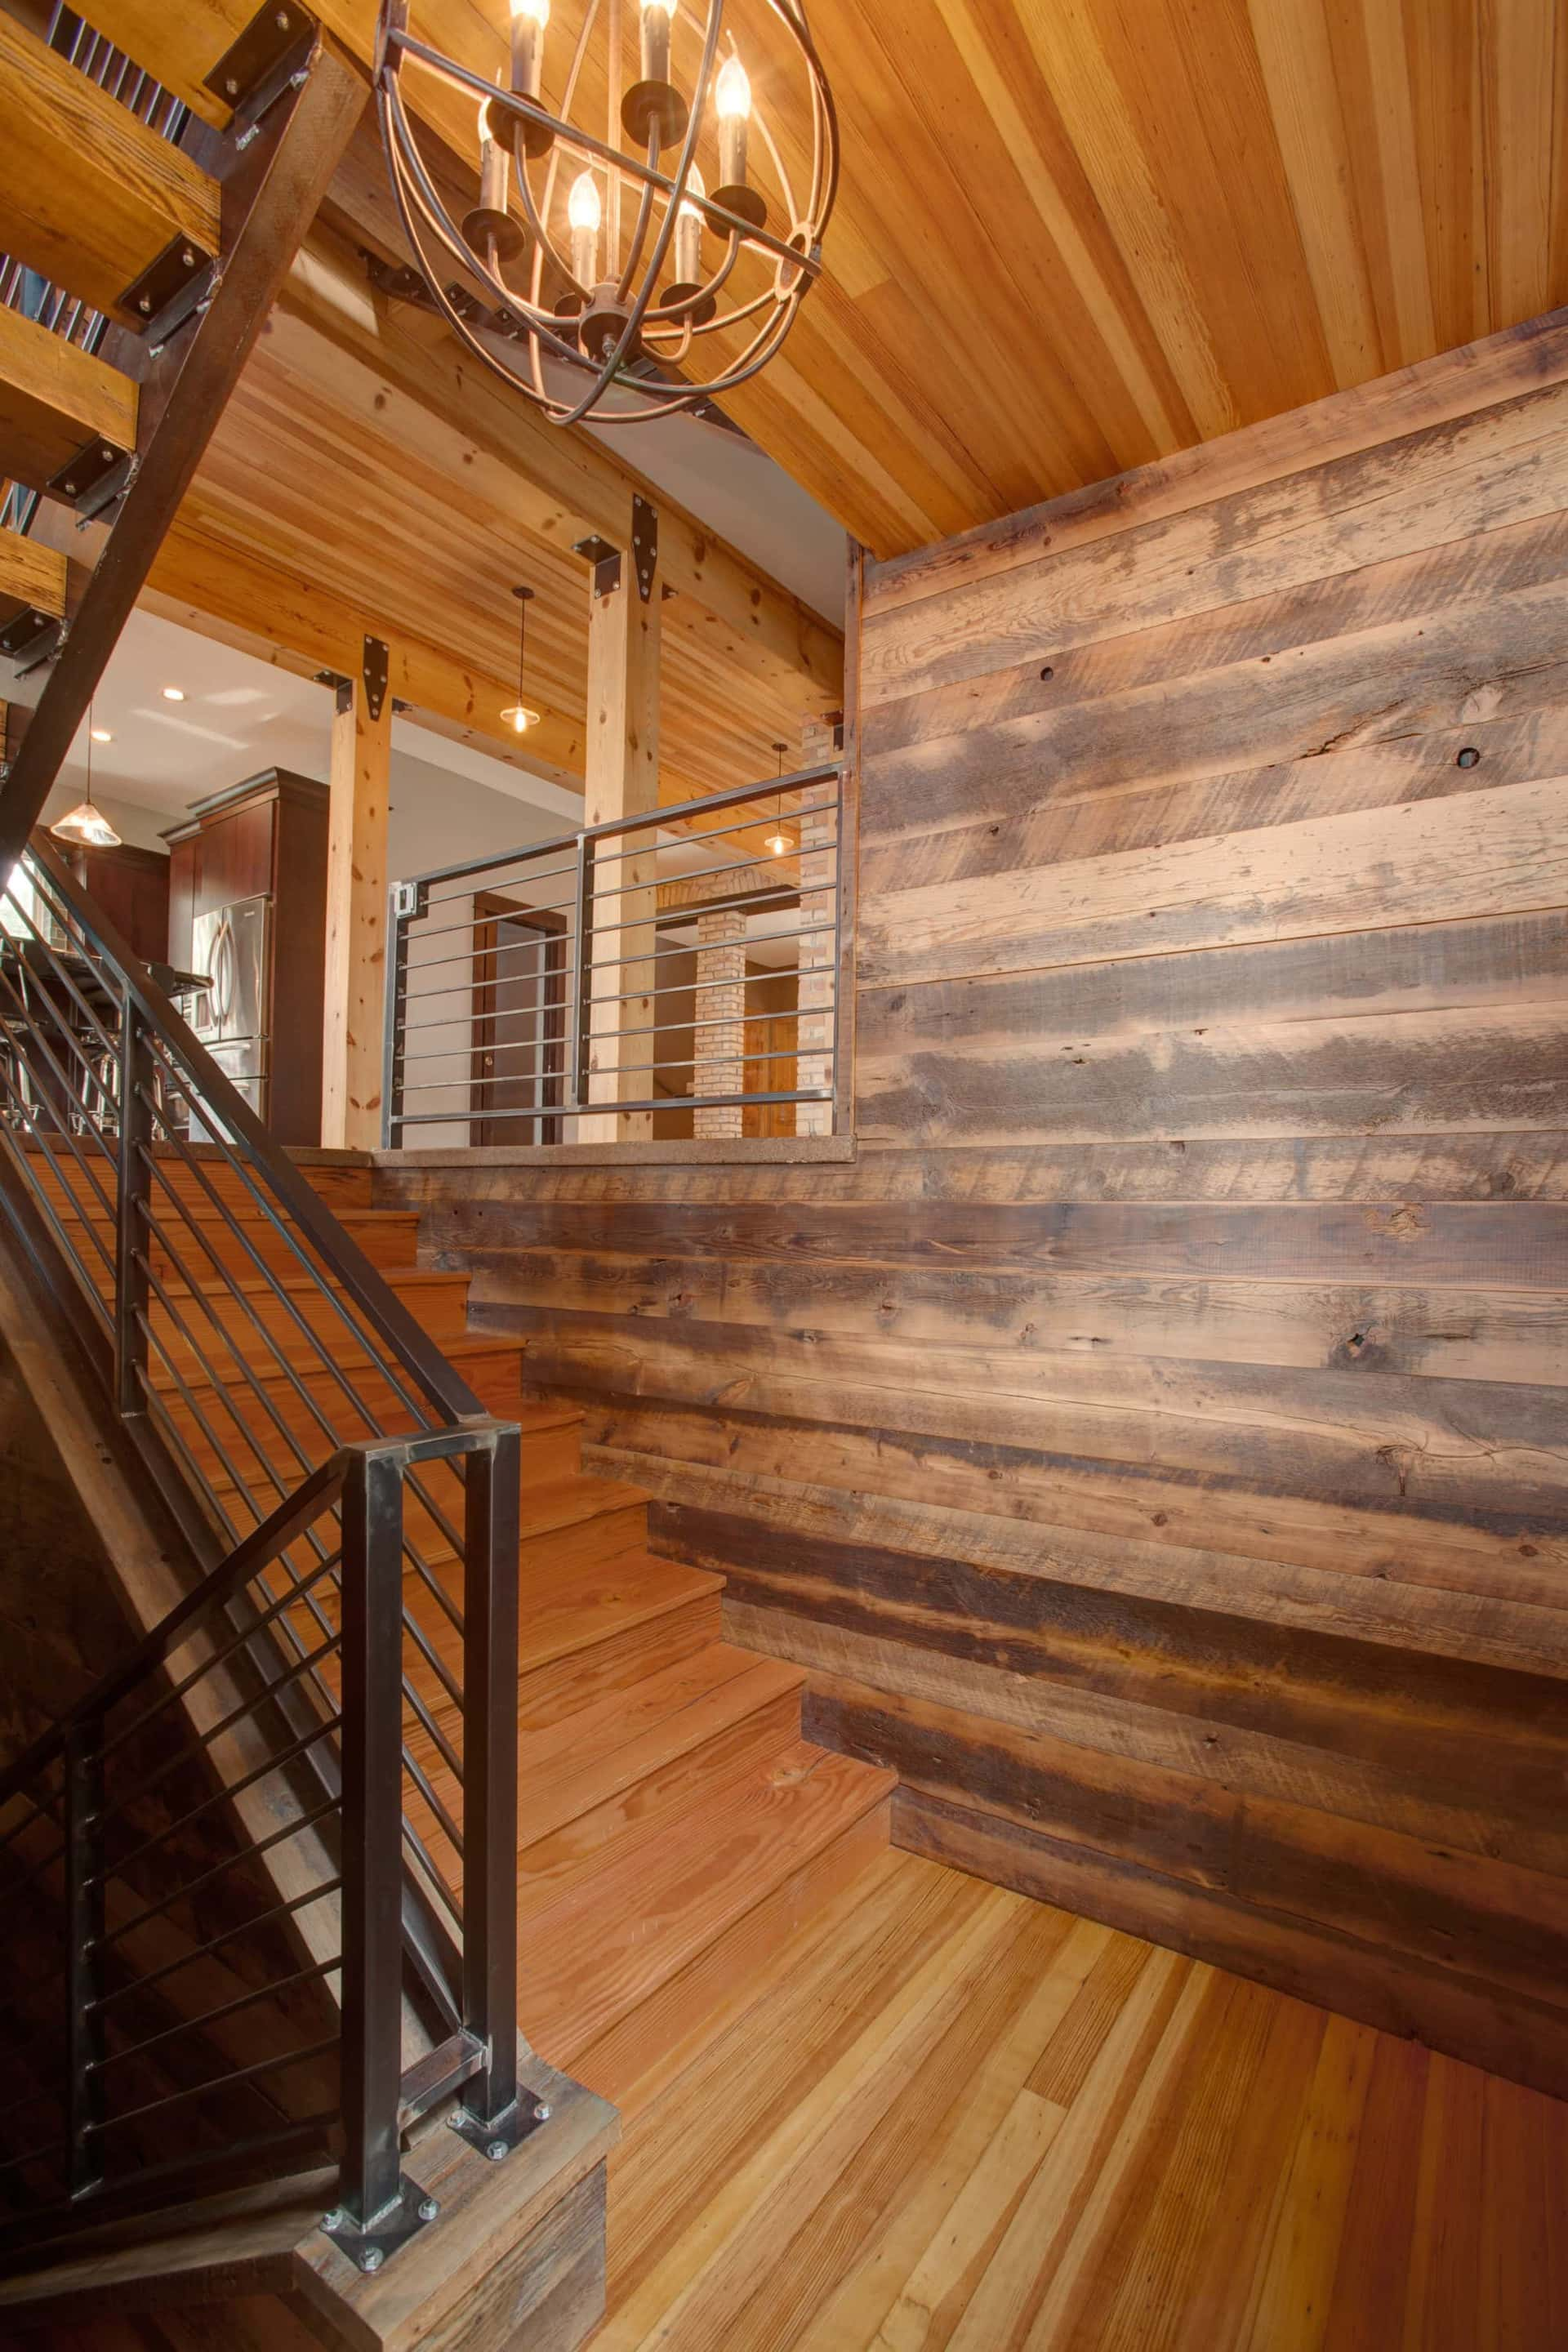 Old Wood Wall Paneling: Authentic Antique Lumber